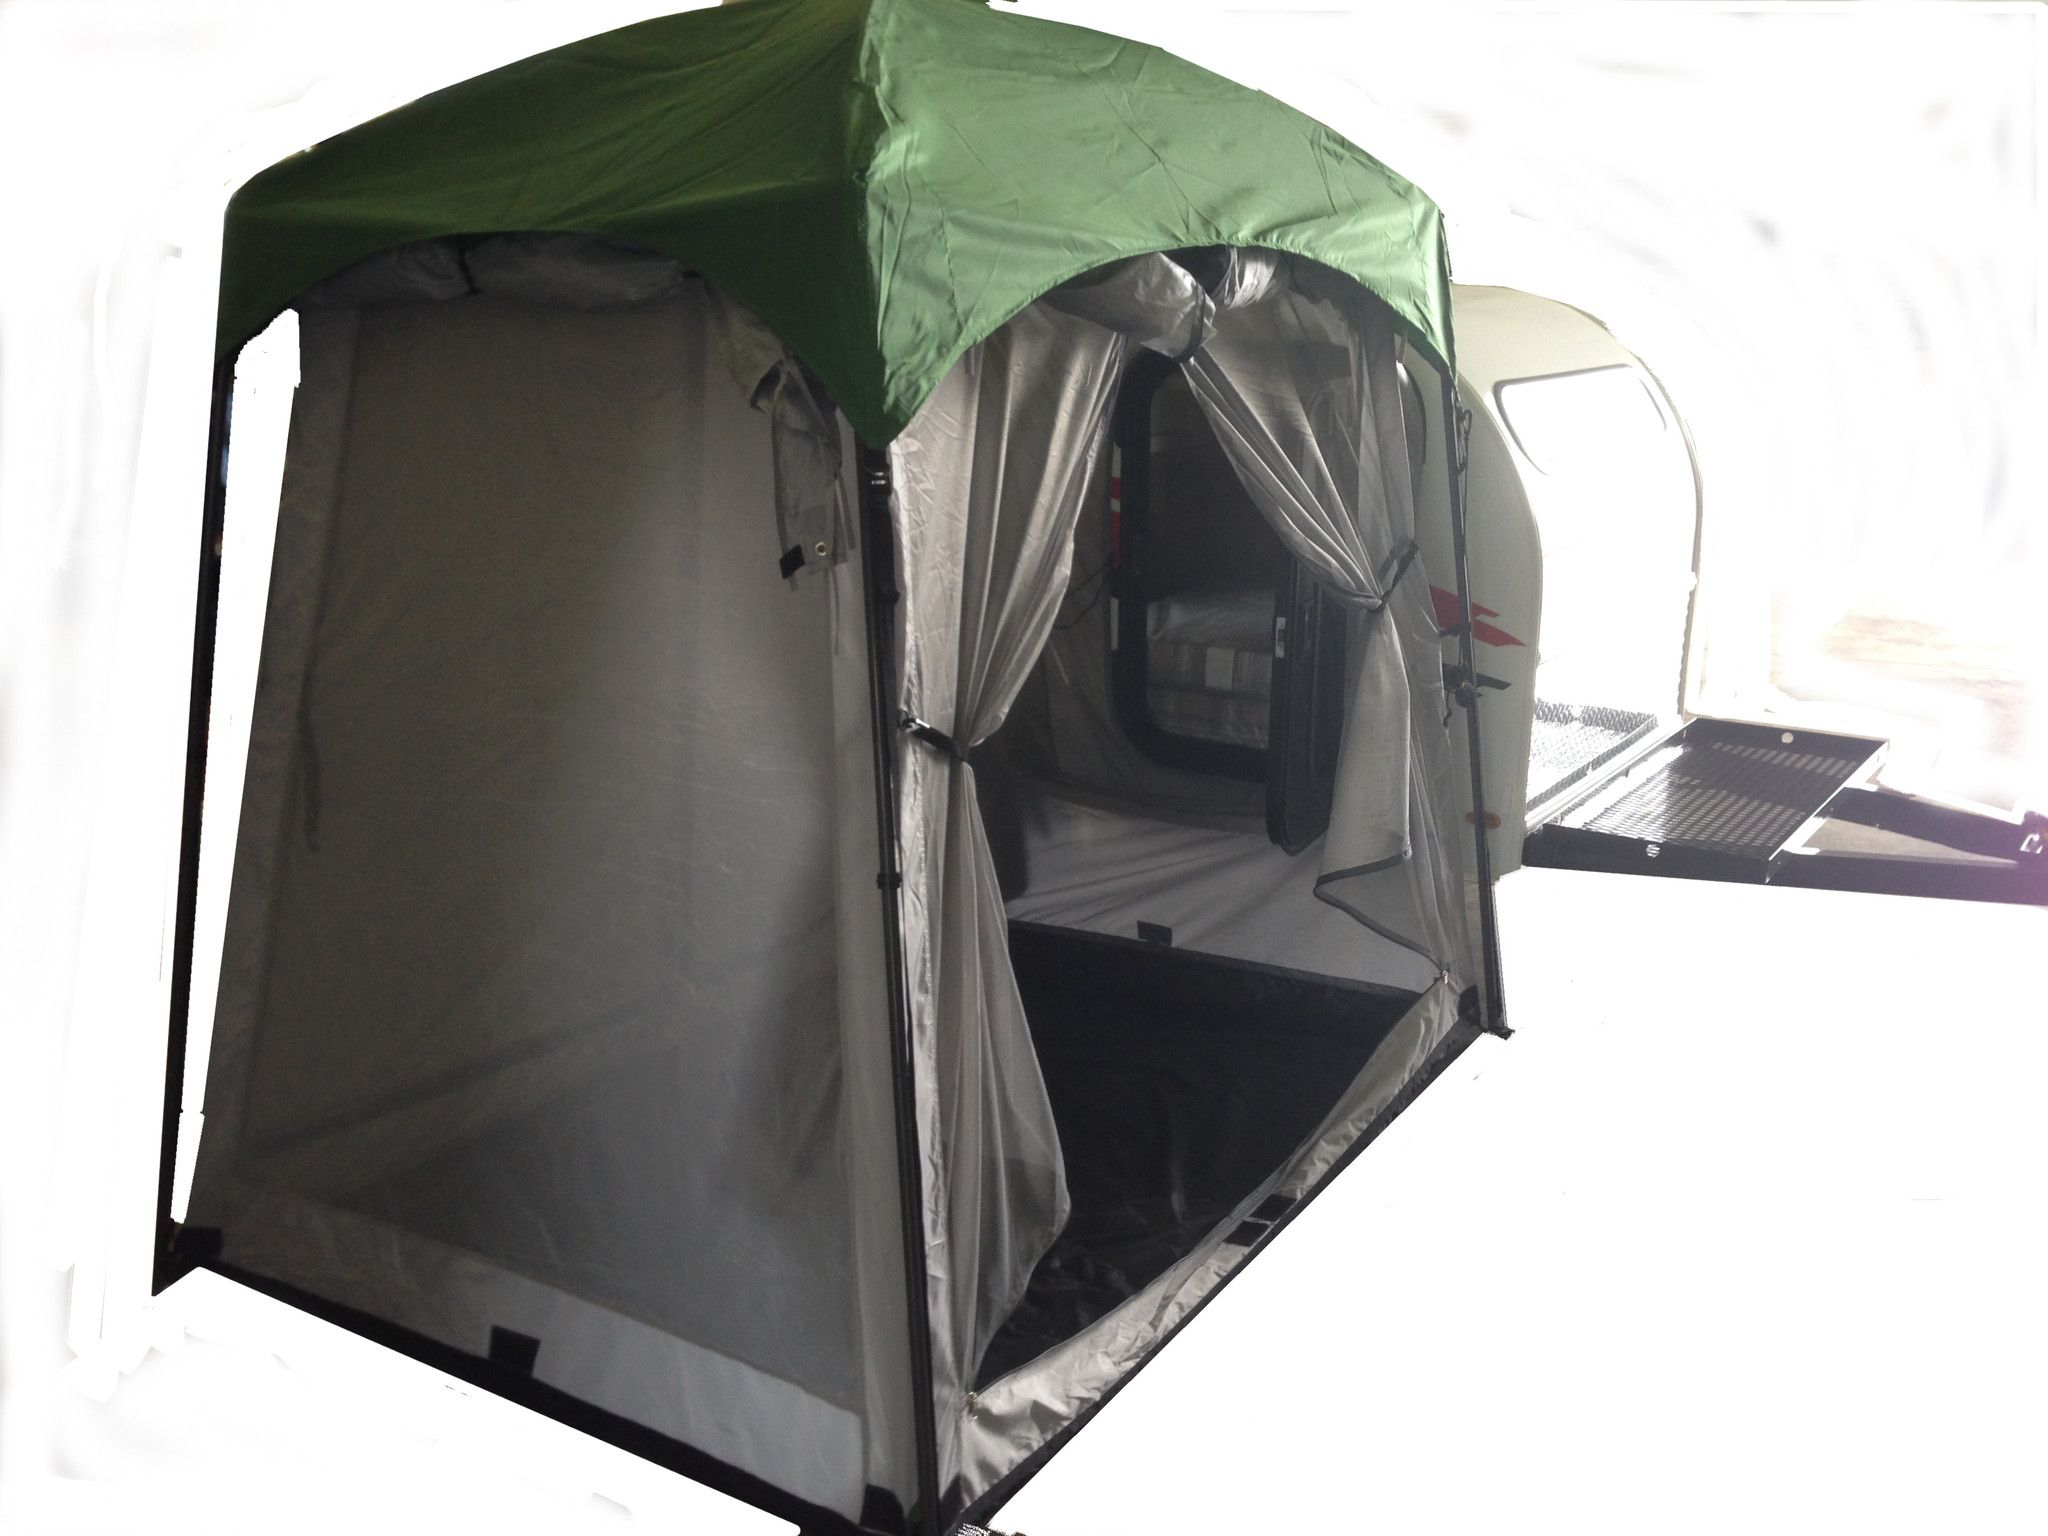 5x7 Mini Side Mount Screen Room Tent  sc 1 st  Pinterest & 5x7 Mini Side Mount Screen Room Tent | Teardrop trailer Tents and ...